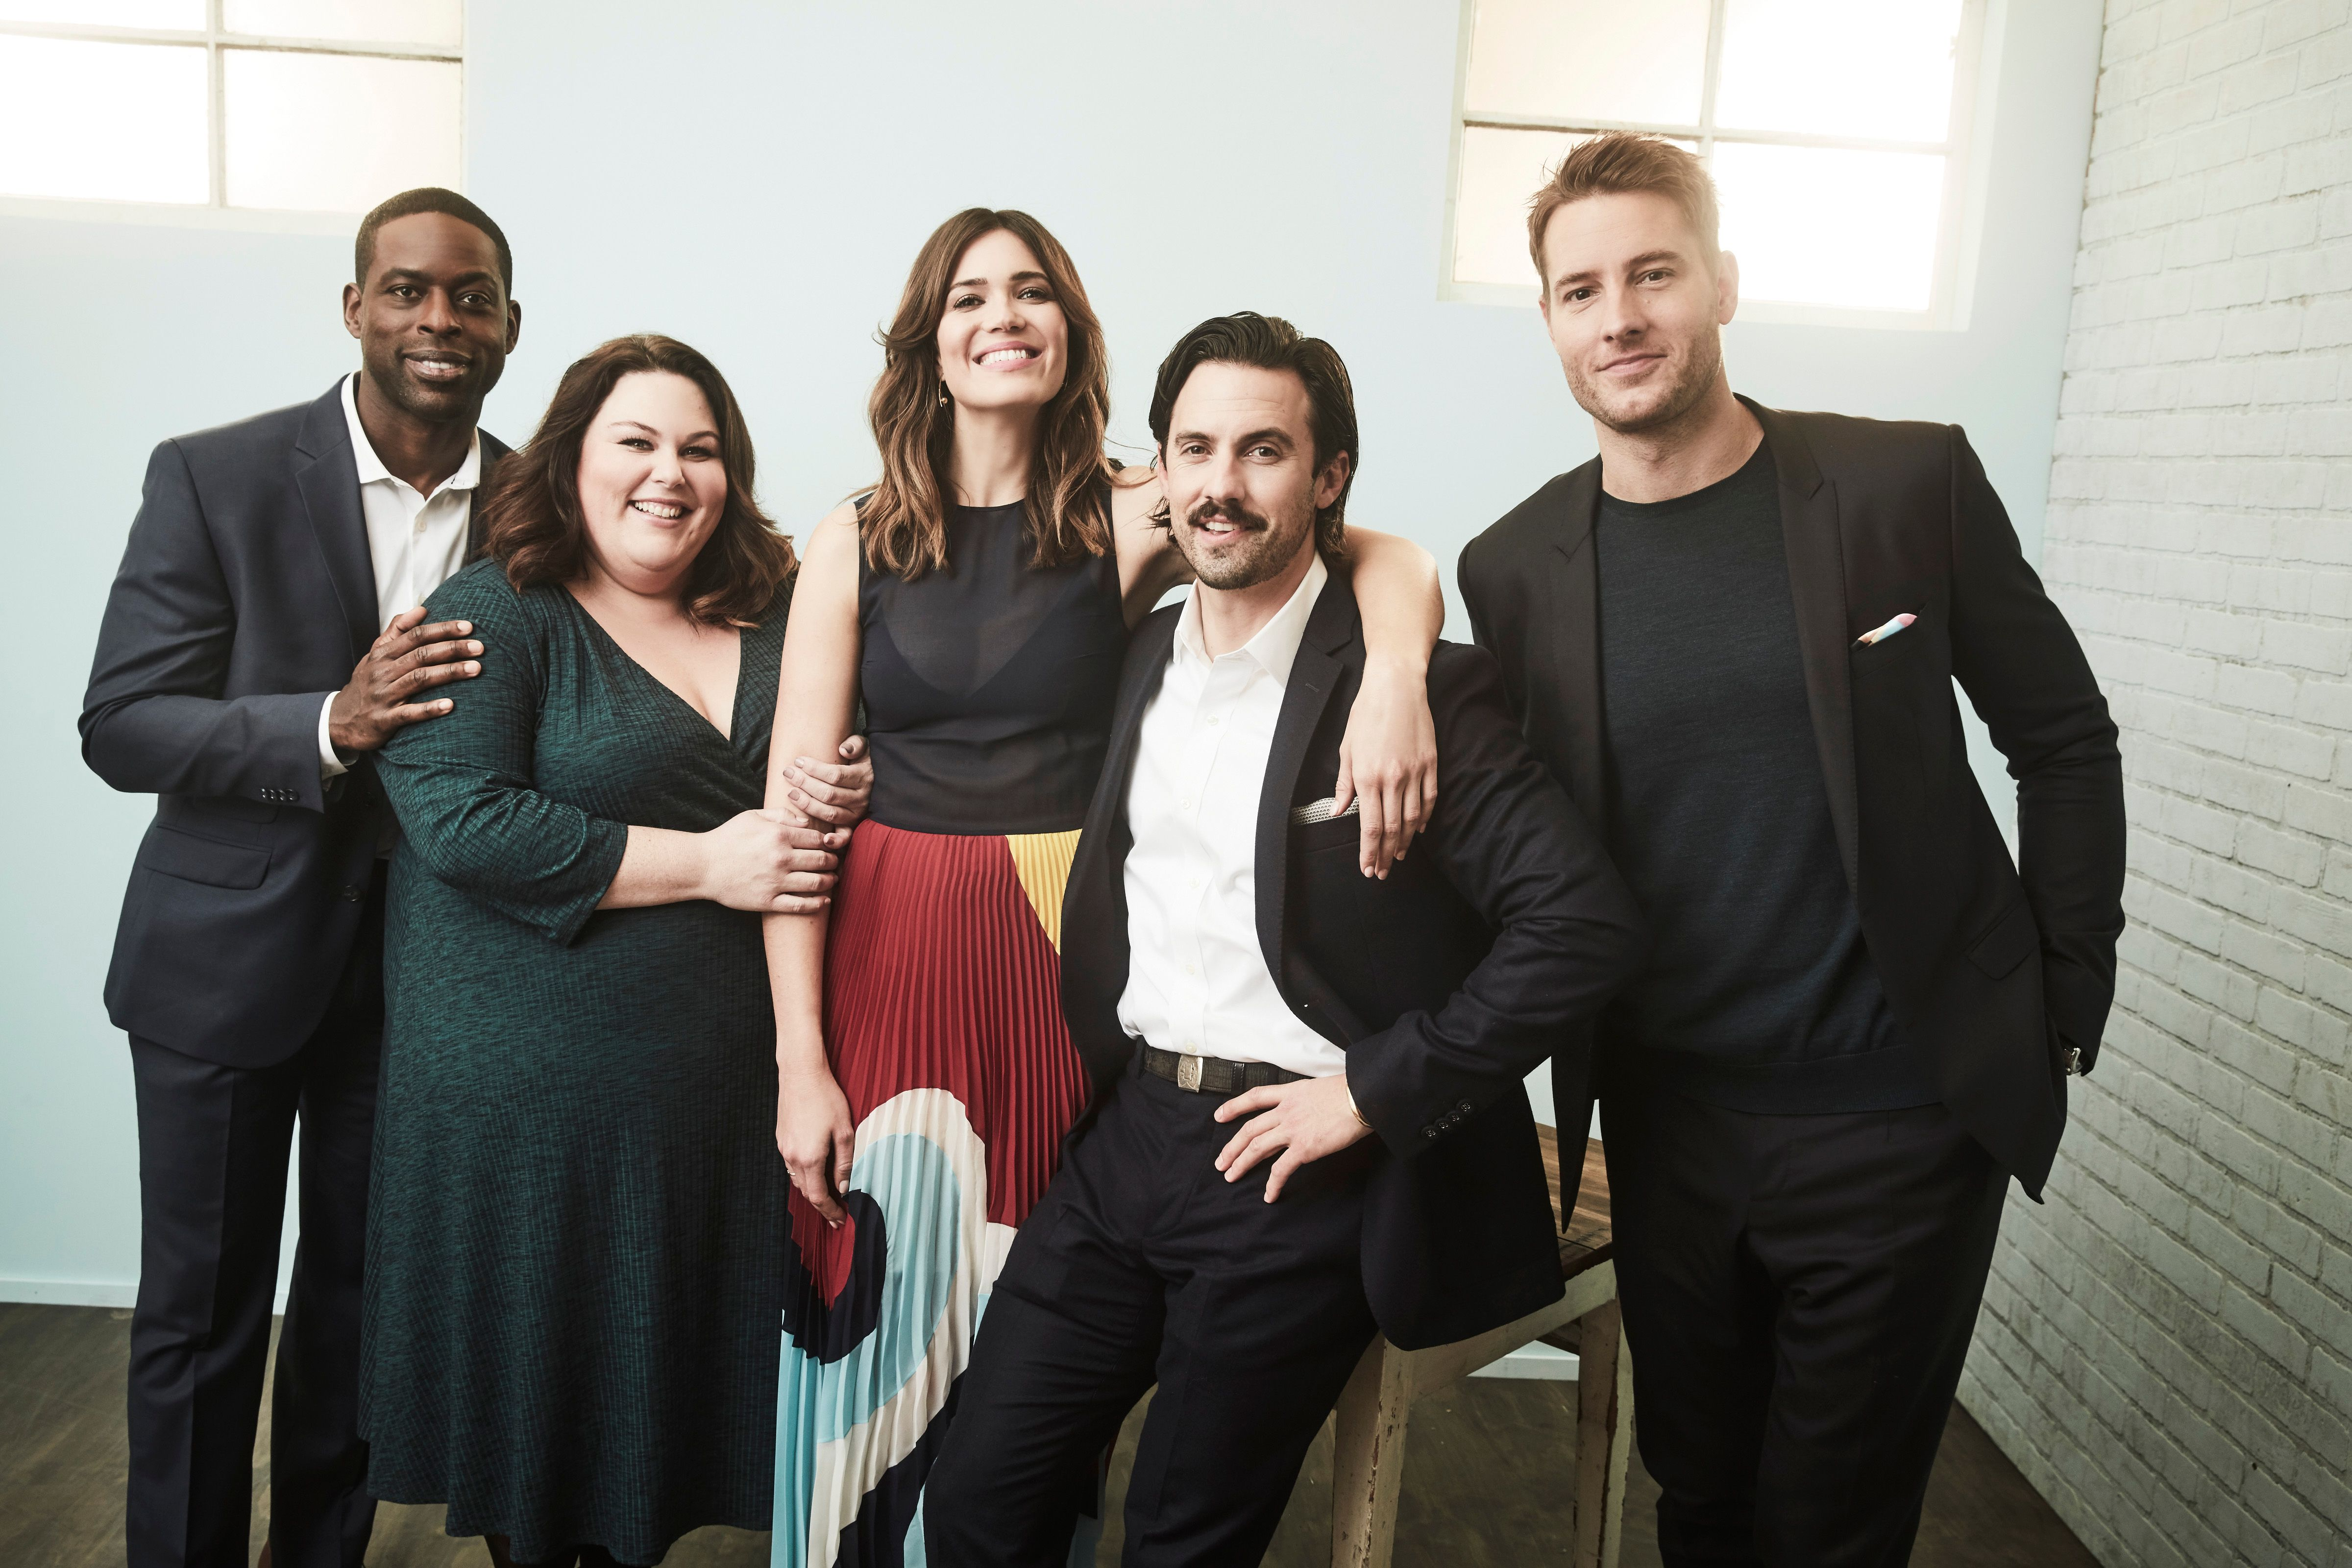 """The cast of """"This Is Us"""" pose for a portrait in the NBCUniversal Press Tour portrait studio at The Langham Huntington, Pasadena on January 18, 2017 